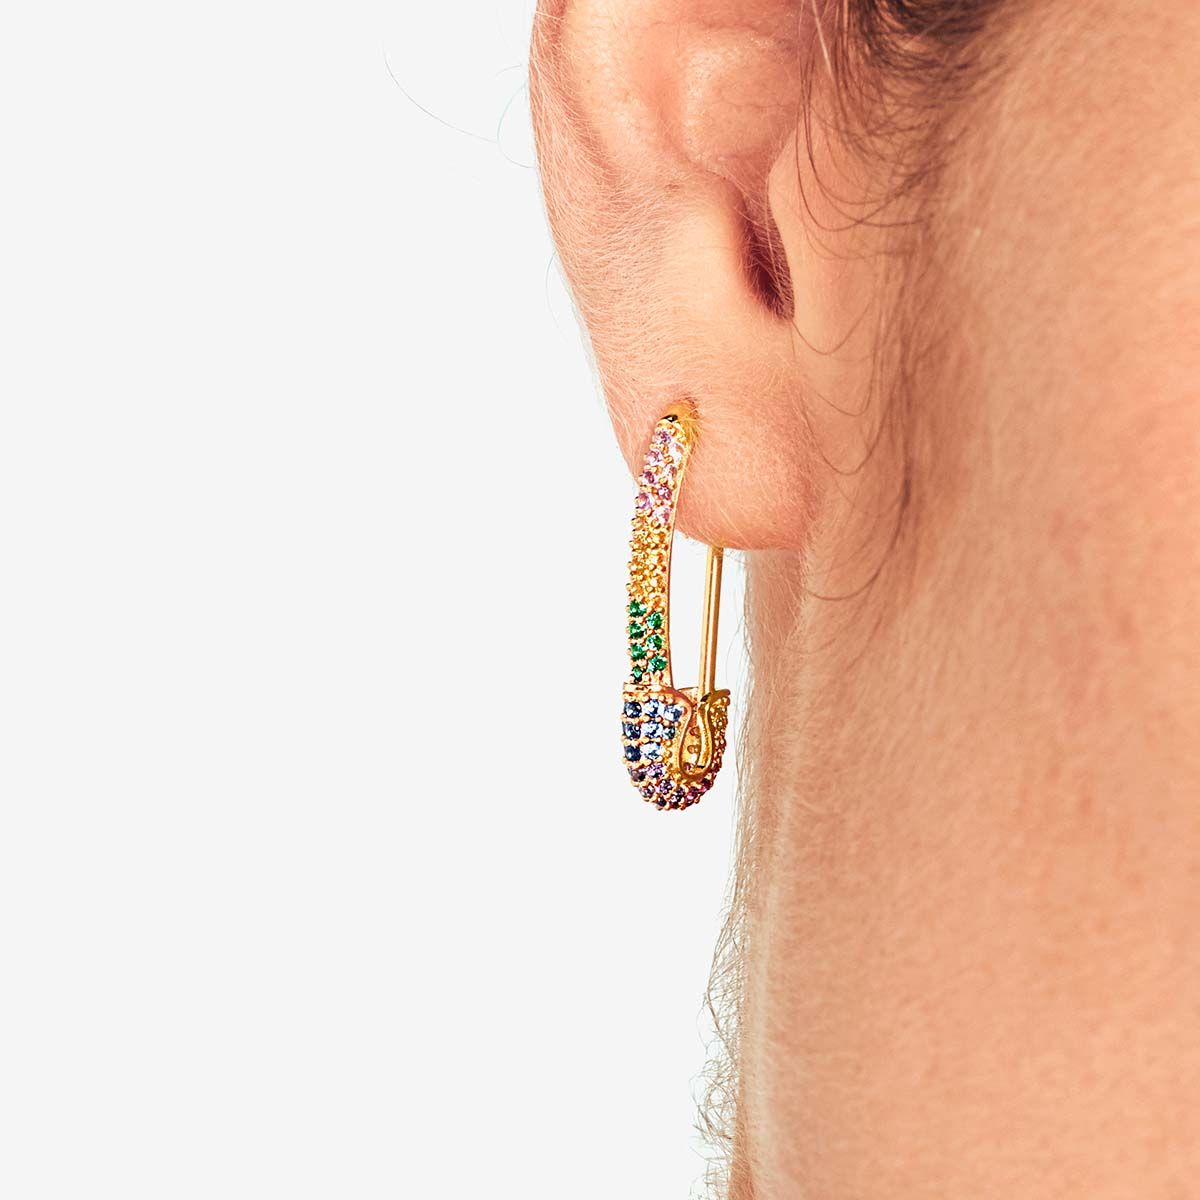 Better Safe than Sorry Rainbow Piercing Gold - Single-Ohrringe - Gold